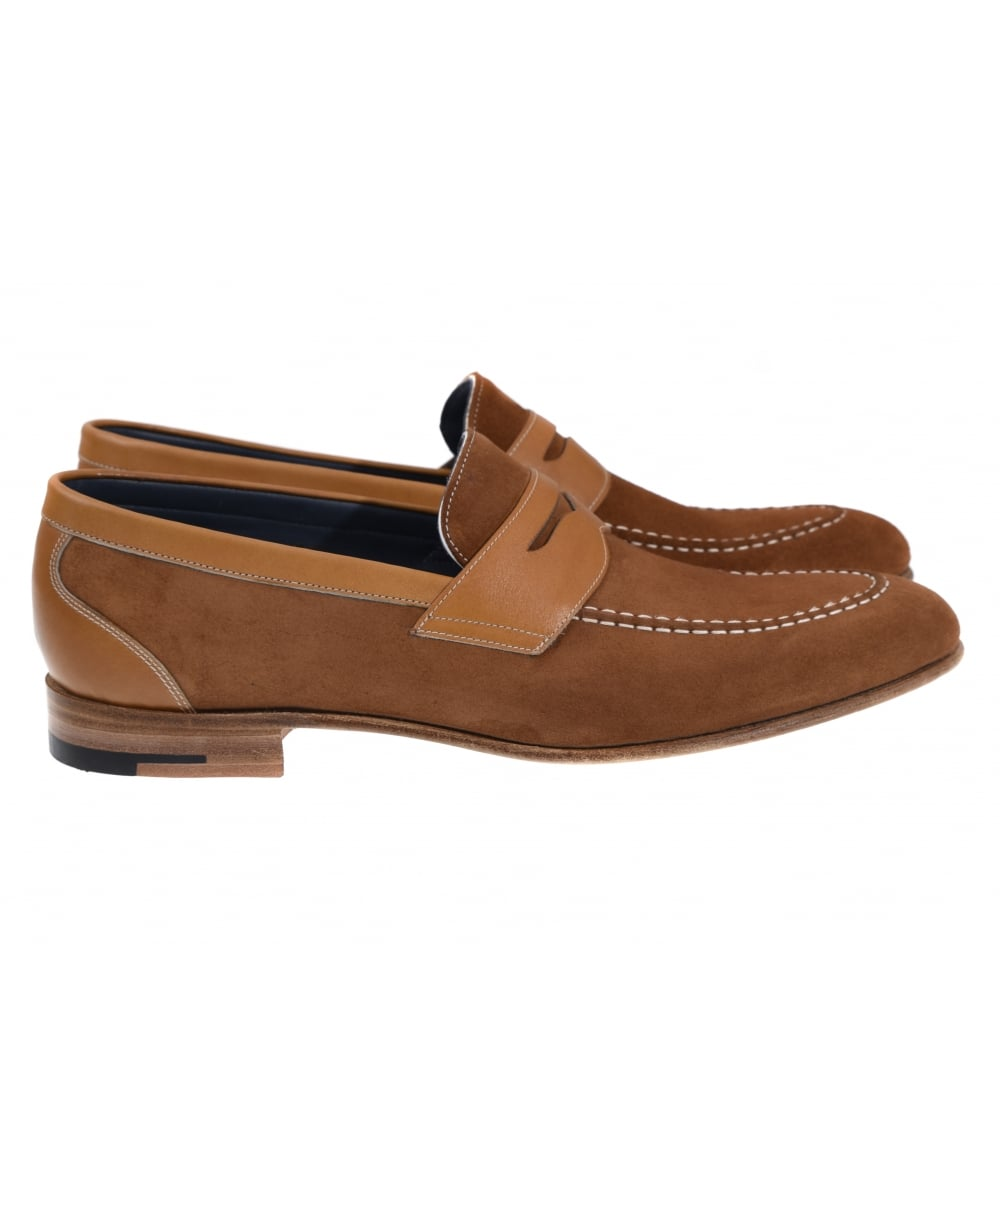 Barker - Dodmoor Cedar Calf and Suede Slop On